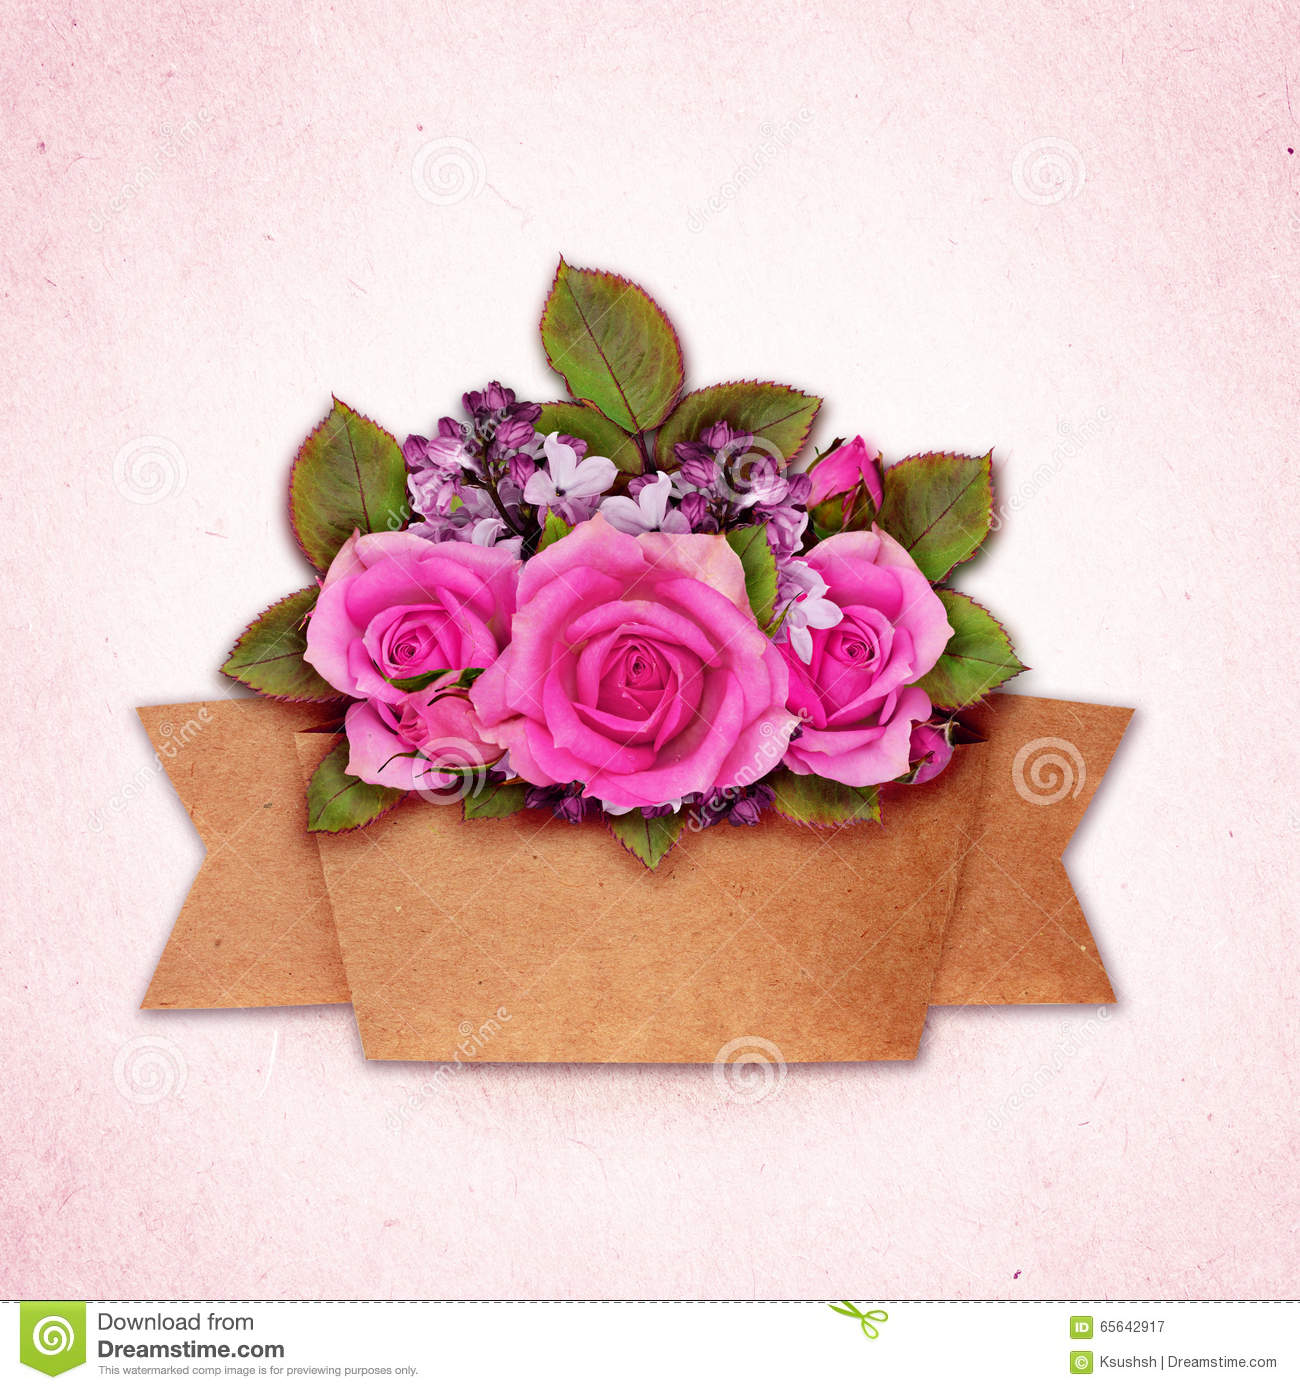 Rose and lilac flowers bouquet with craft paper ribbon stock image download rose and lilac flowers bouquet with craft paper ribbon stock image image of square mightylinksfo